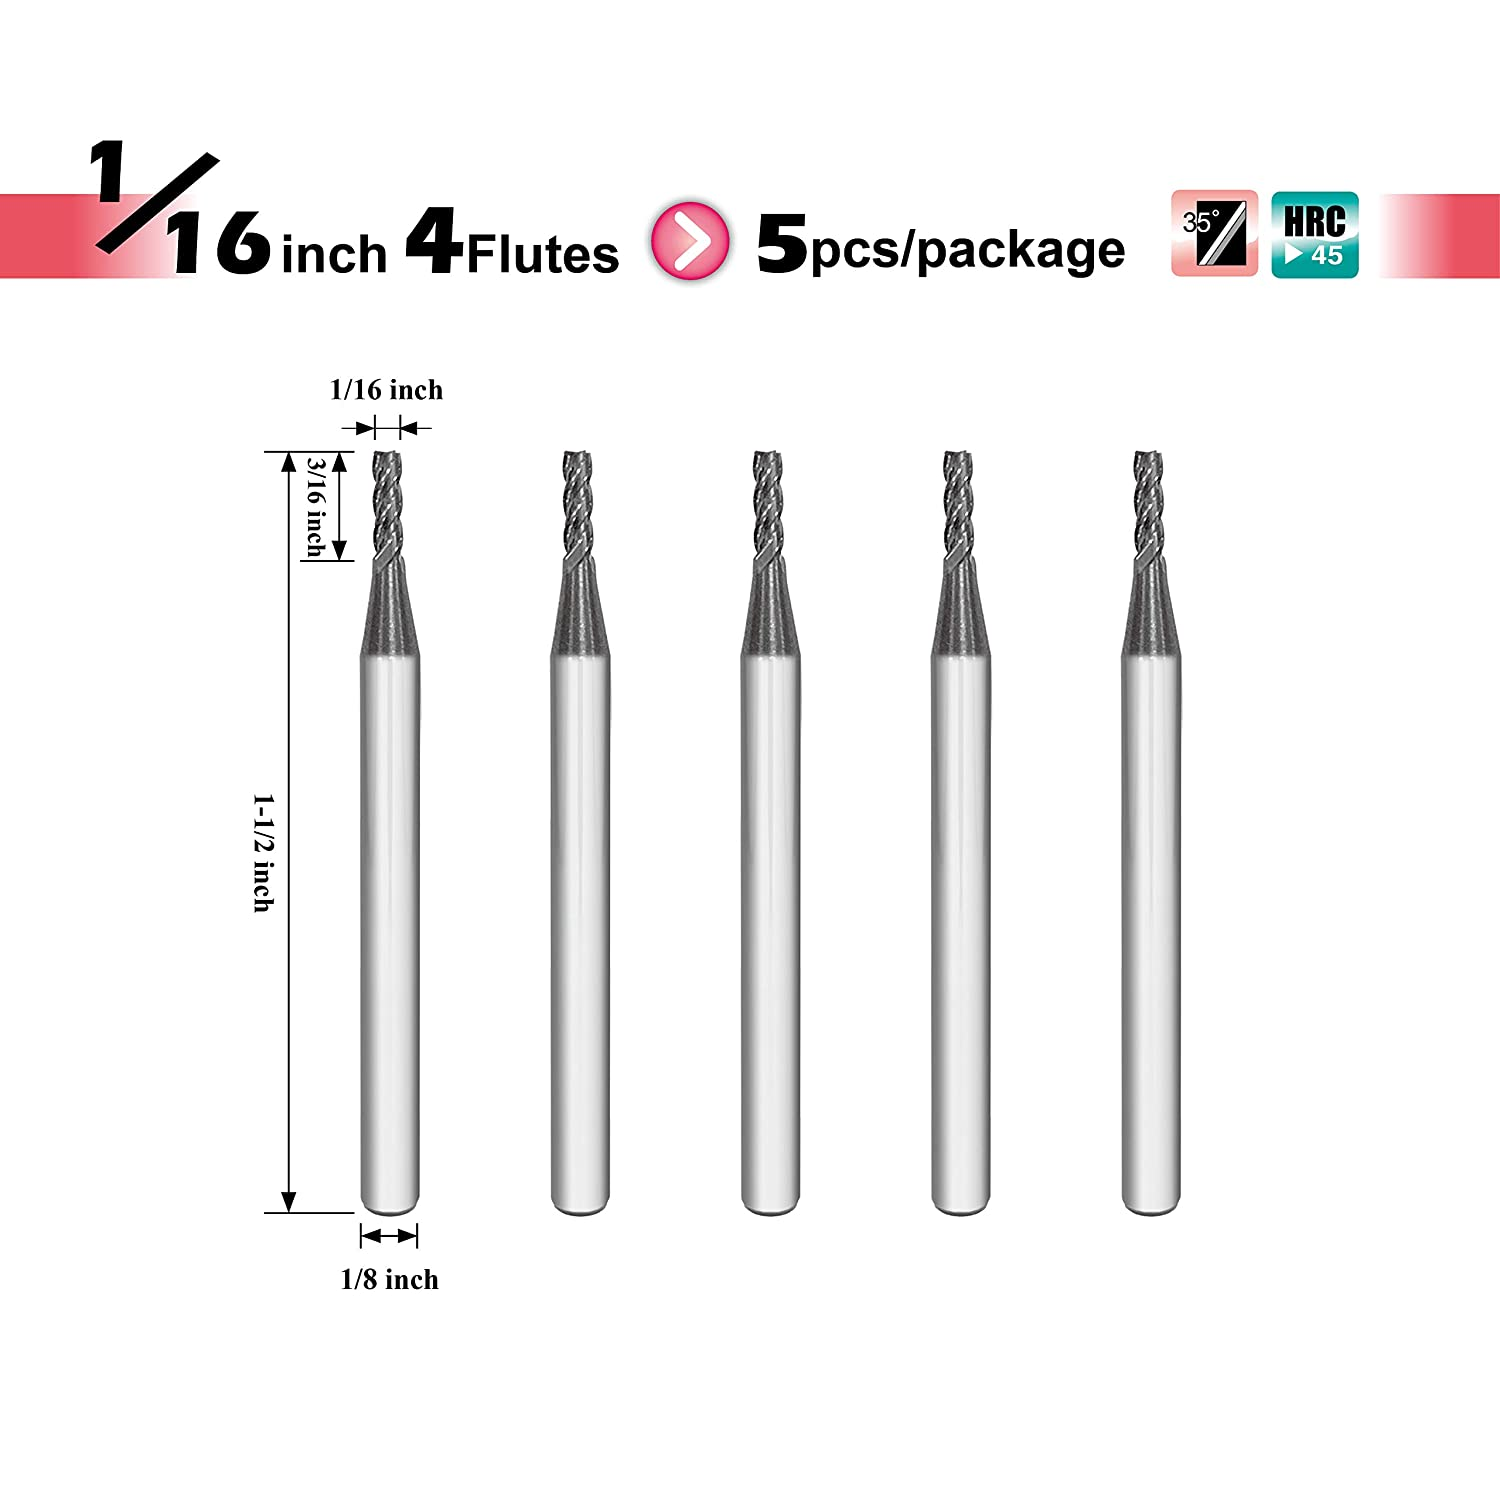 ISE1//24T AlTiBN Coating 4 Flute SPEED TIGER ISE Carbide Square End Mill Micro Grain Carbide End Mill for Alloy Steels//Hardened Steels 1 Piece, 1//2